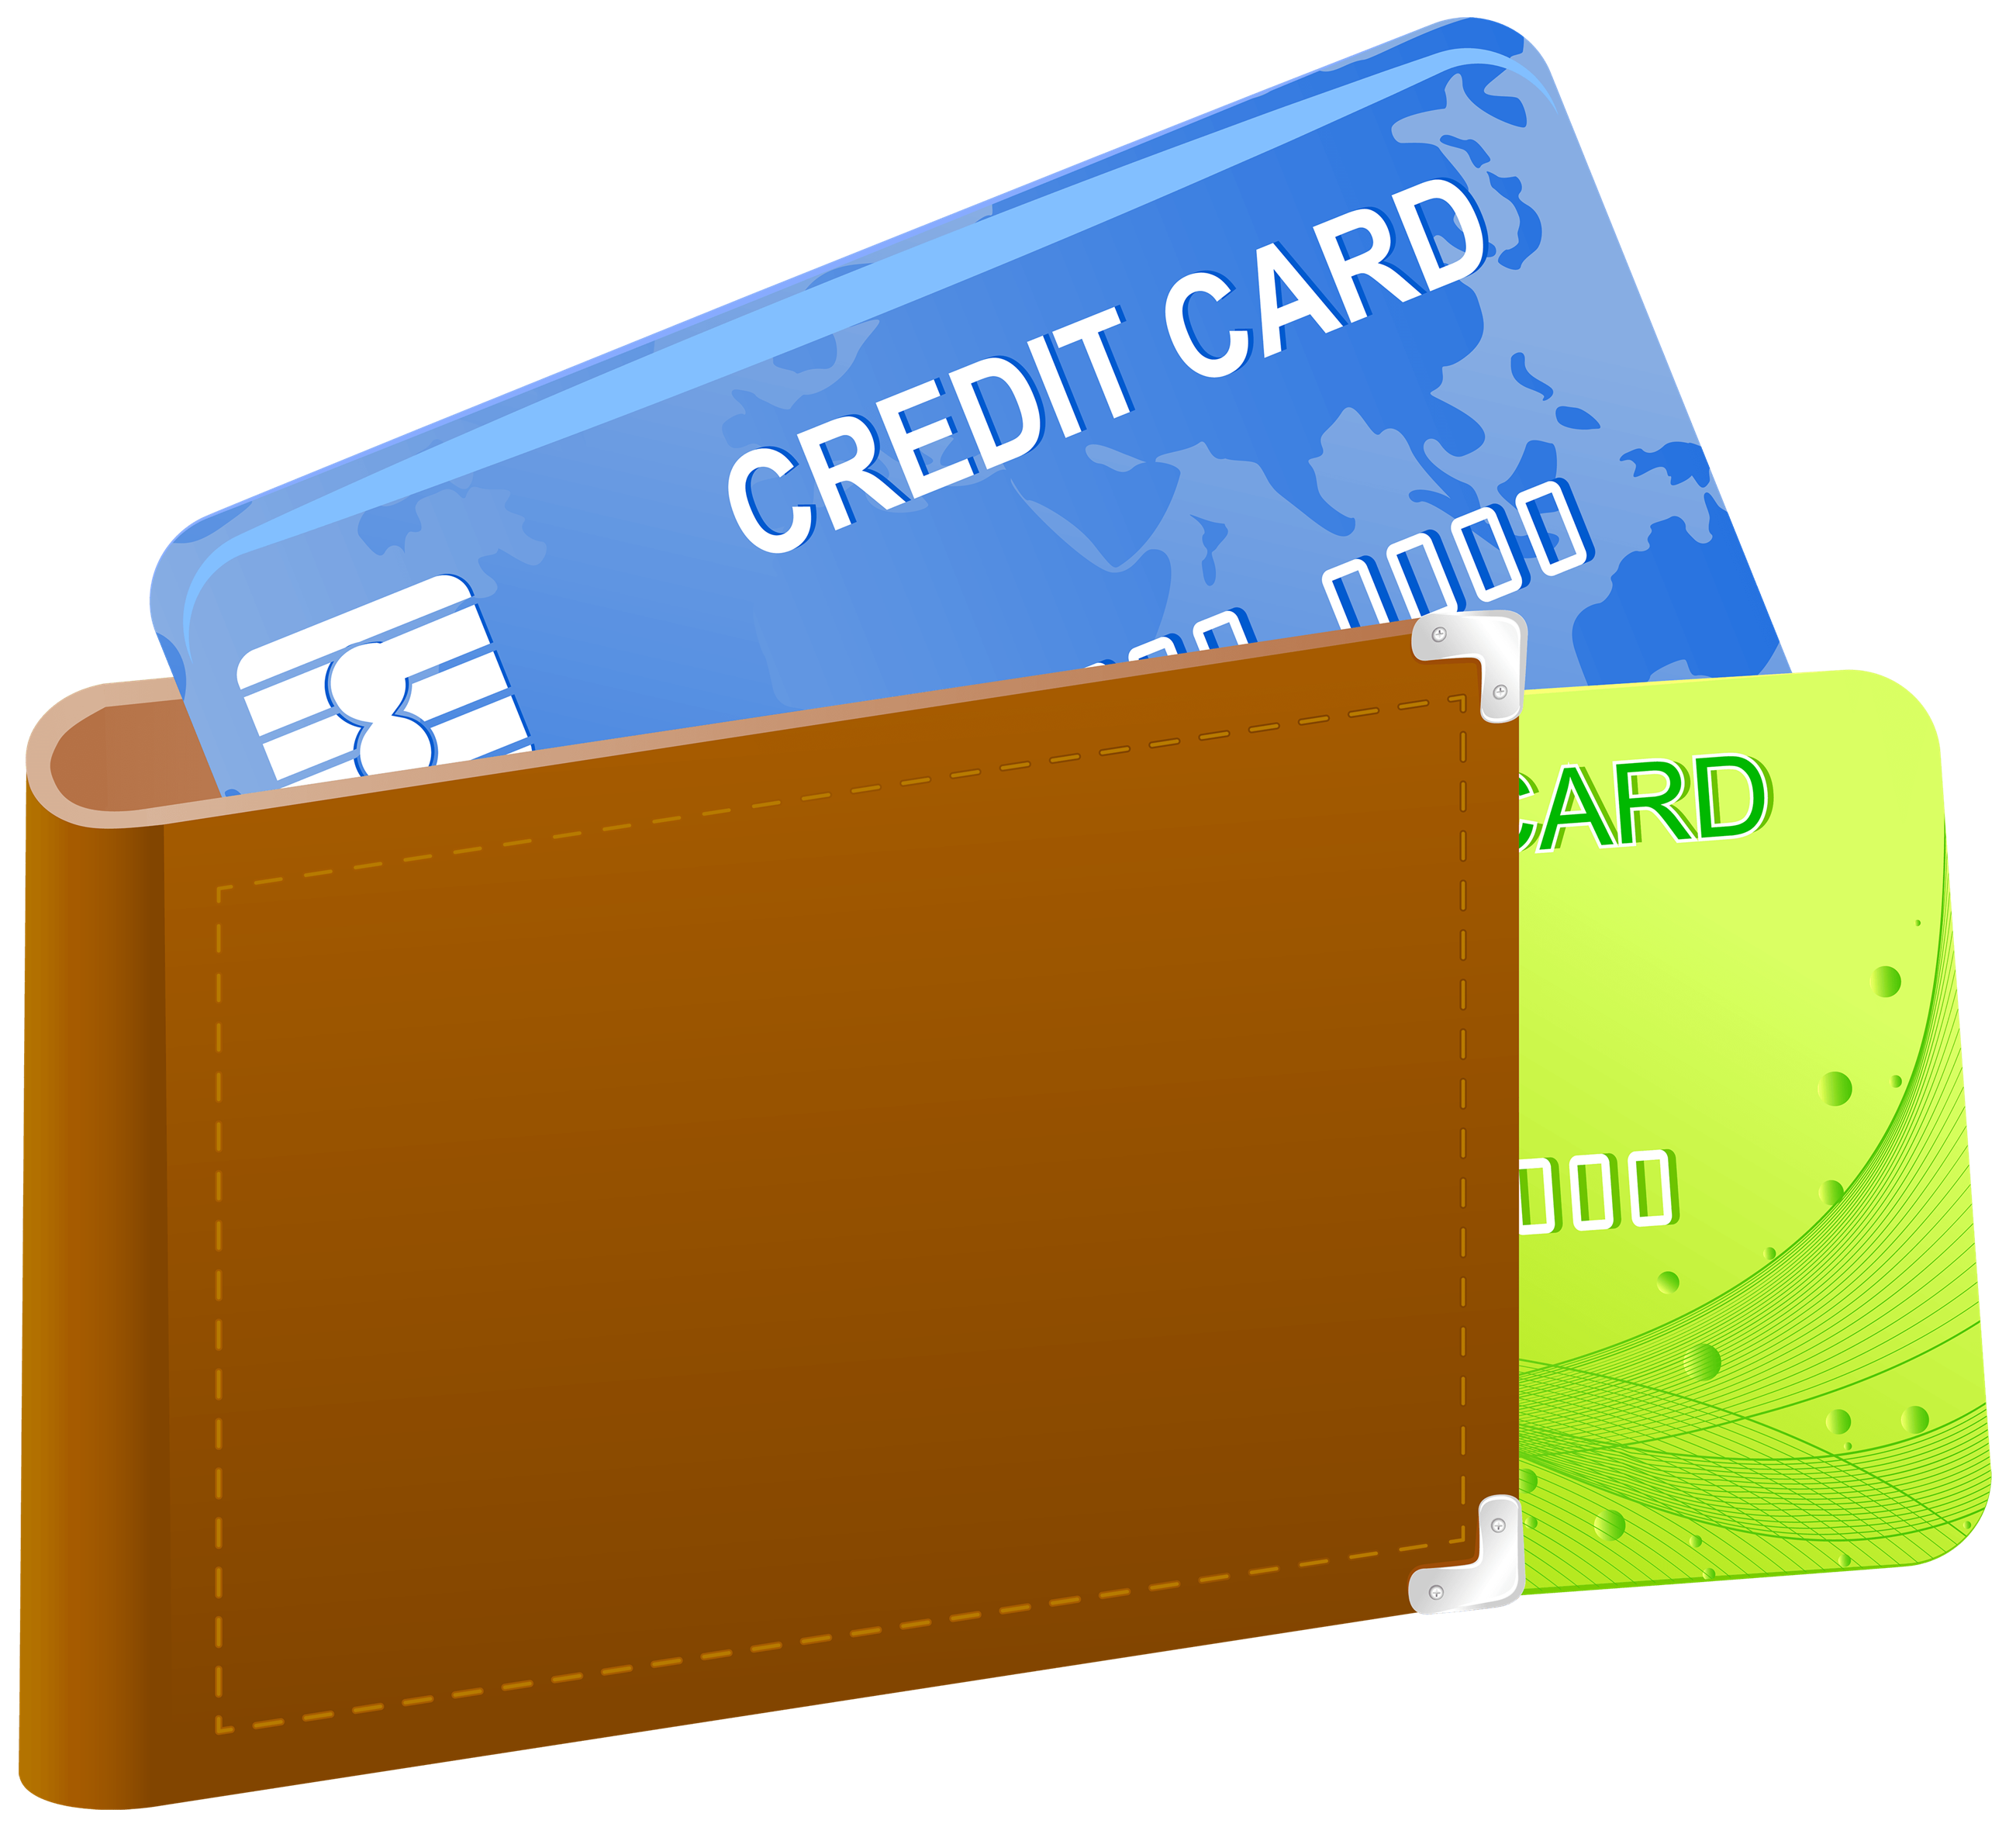 credit-card-transparent-background-2